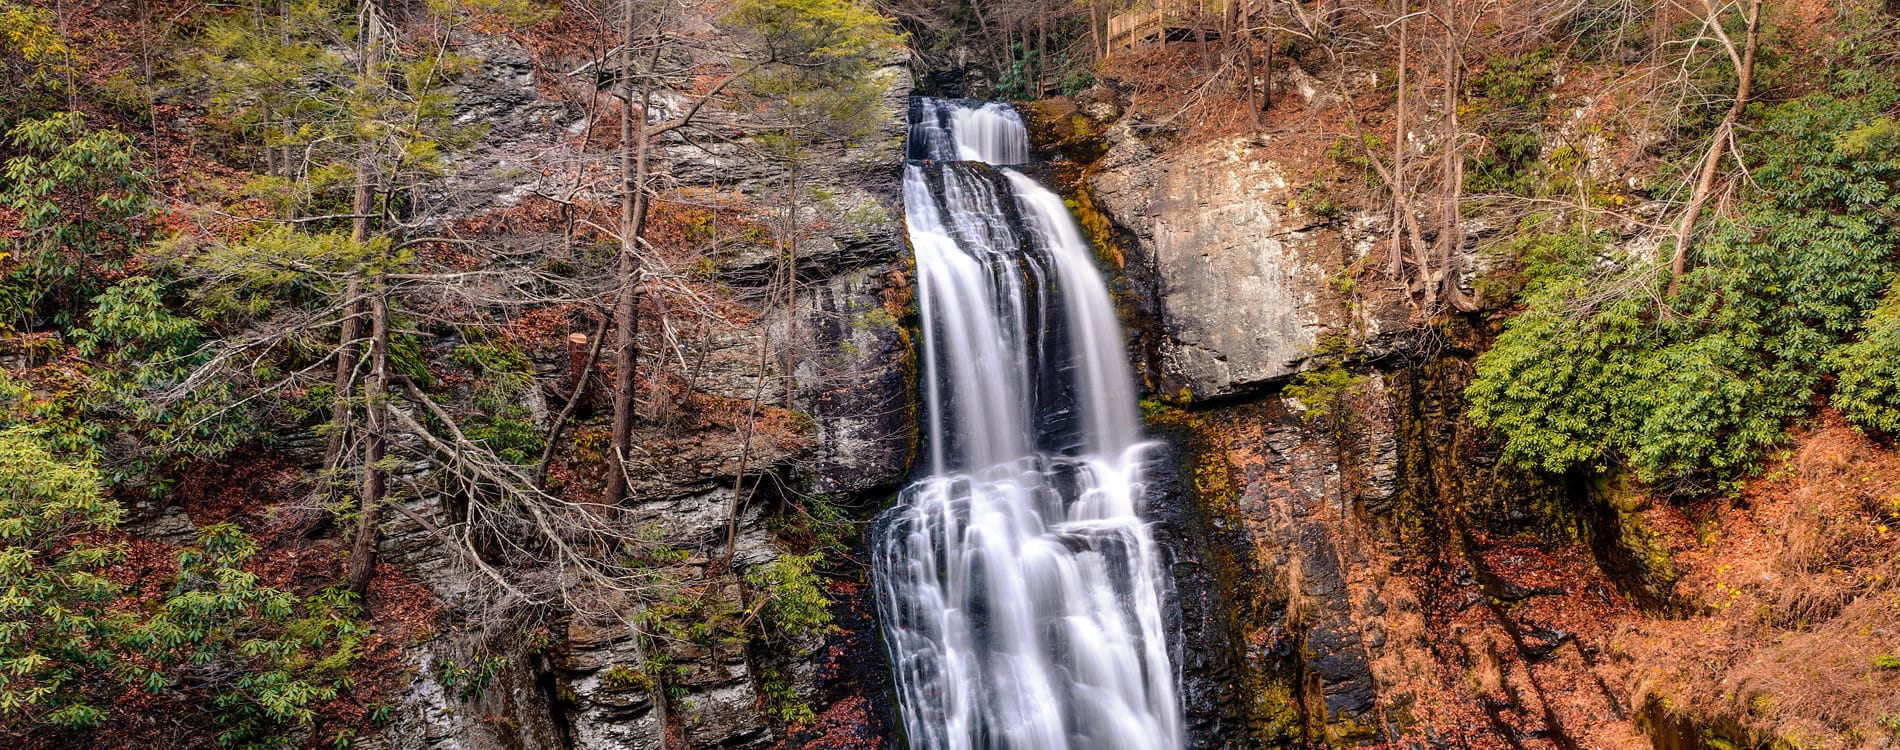 Fall at Bushkill Waterfall in the Poconos PA